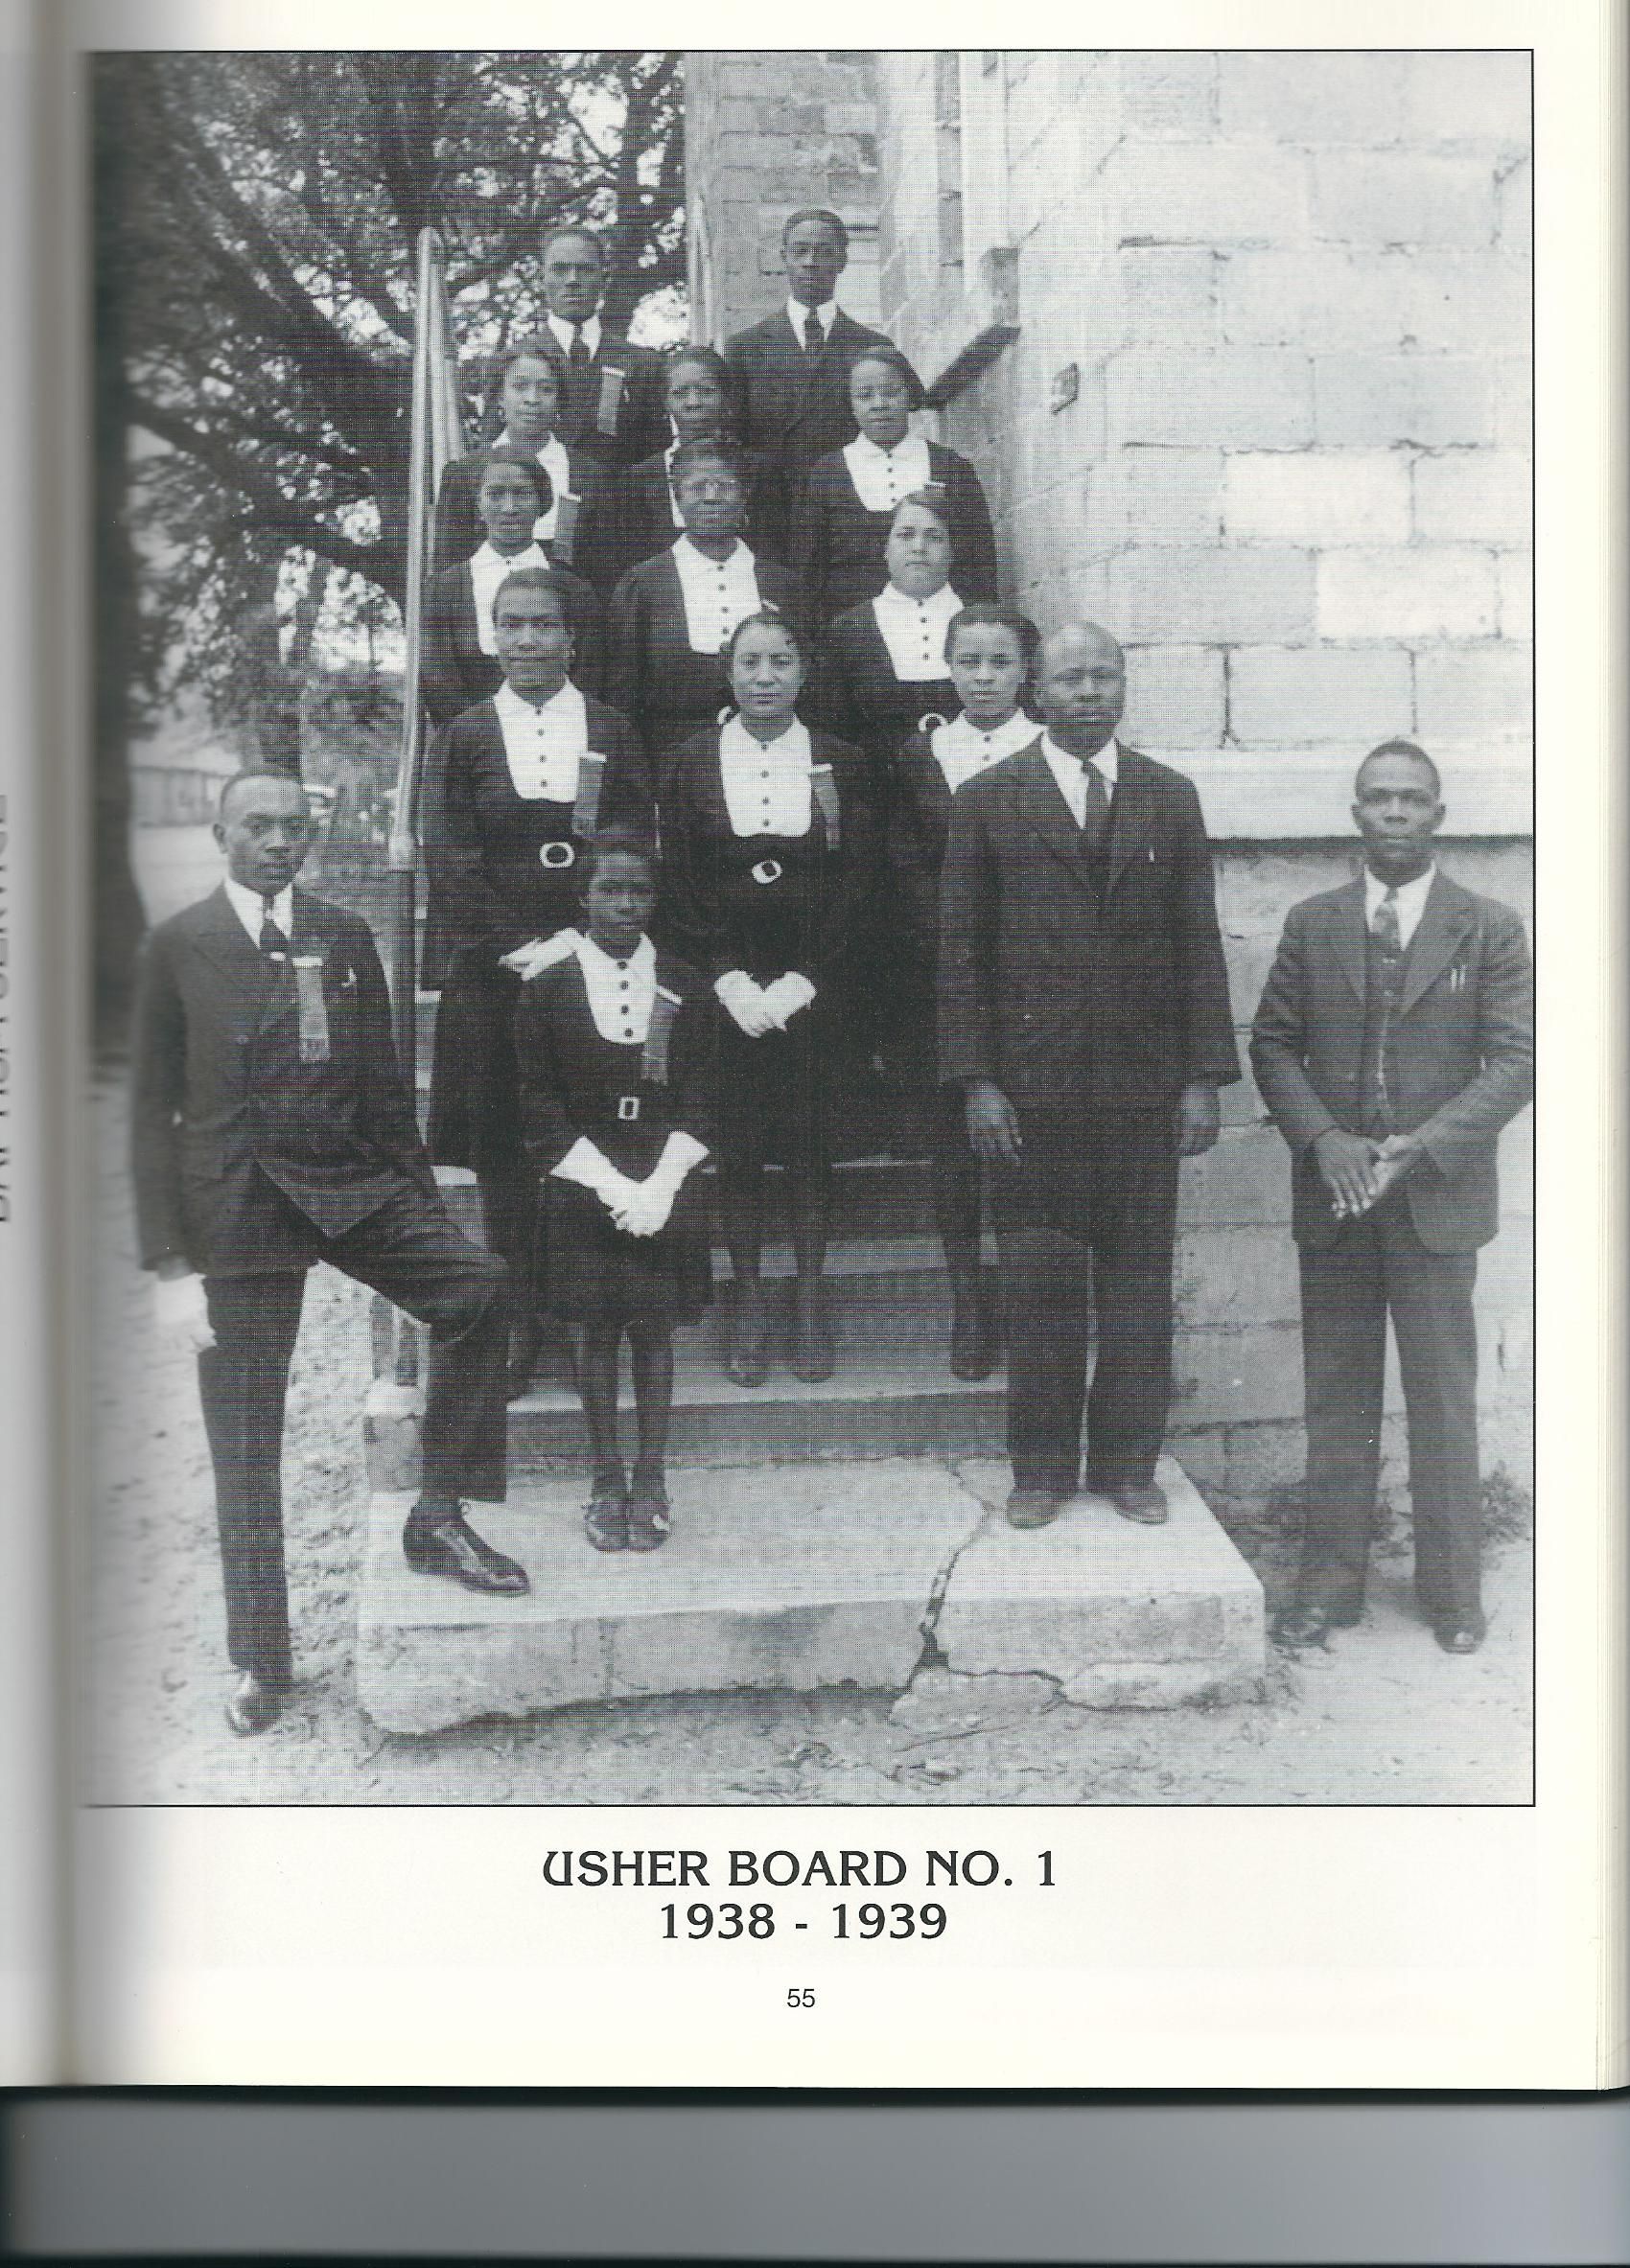 Usher Board No. 1 1938-1939